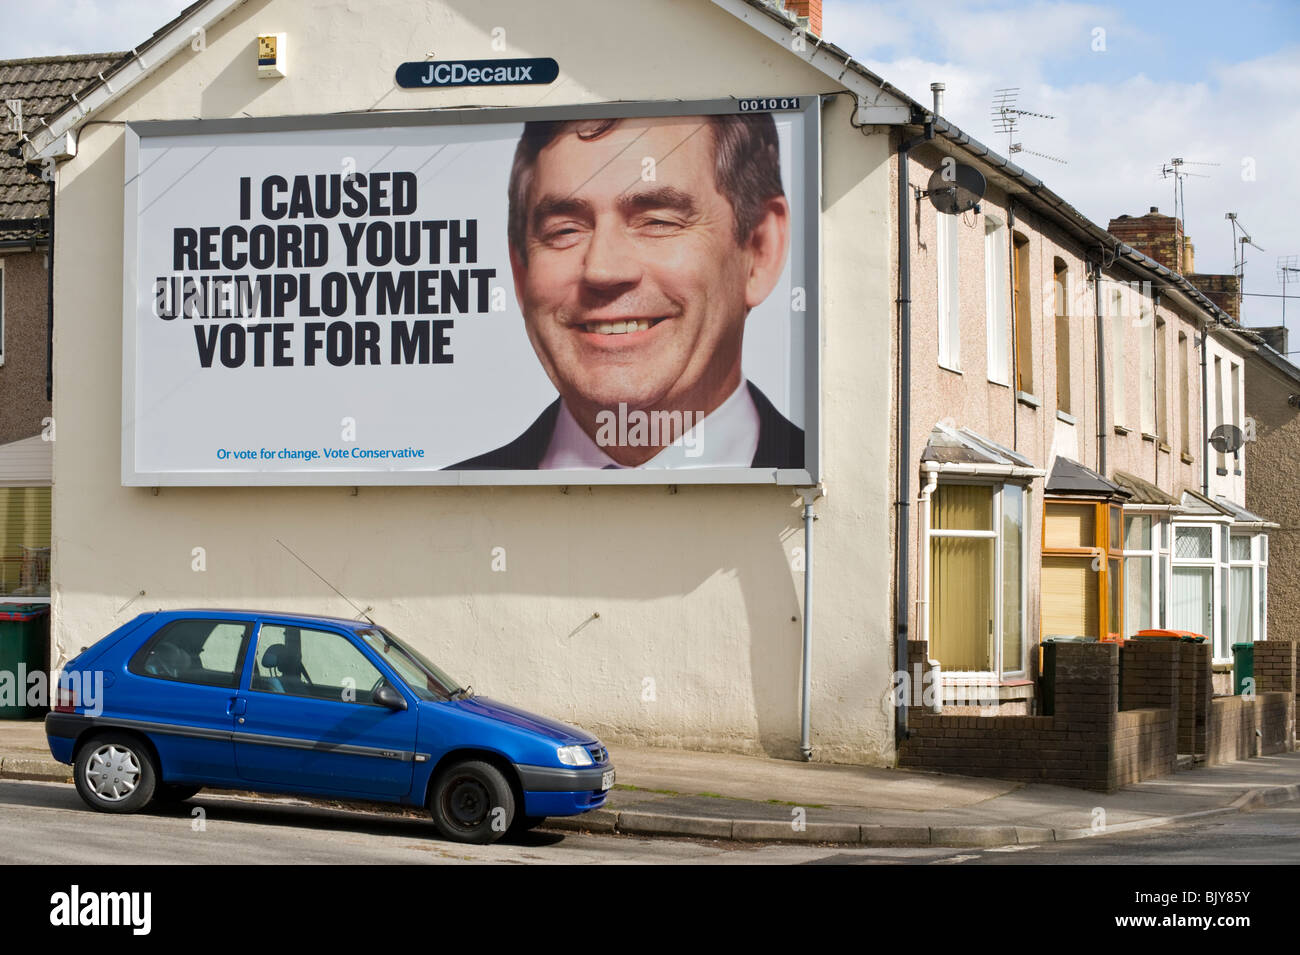 Conservative Party 2010 General Election 48 sheet billboard poster featuring Gordon Brown at JCDecaux site on end - Stock Image